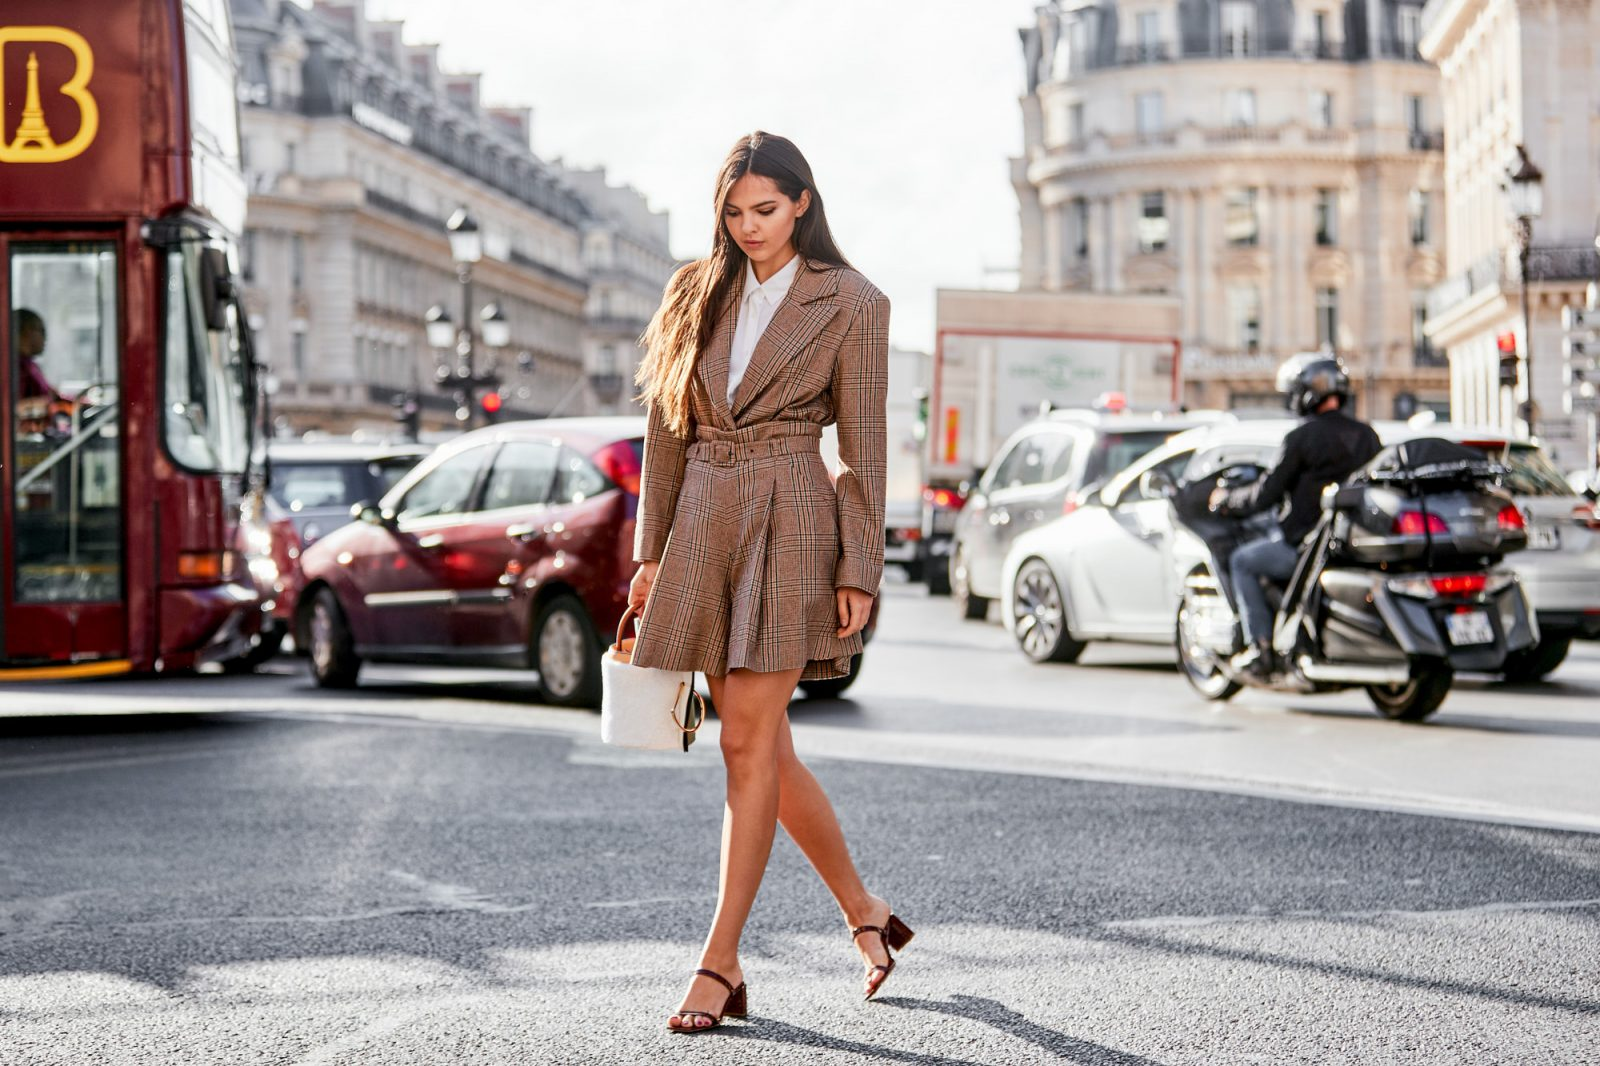 Paris fashion week from 2019 trends we love